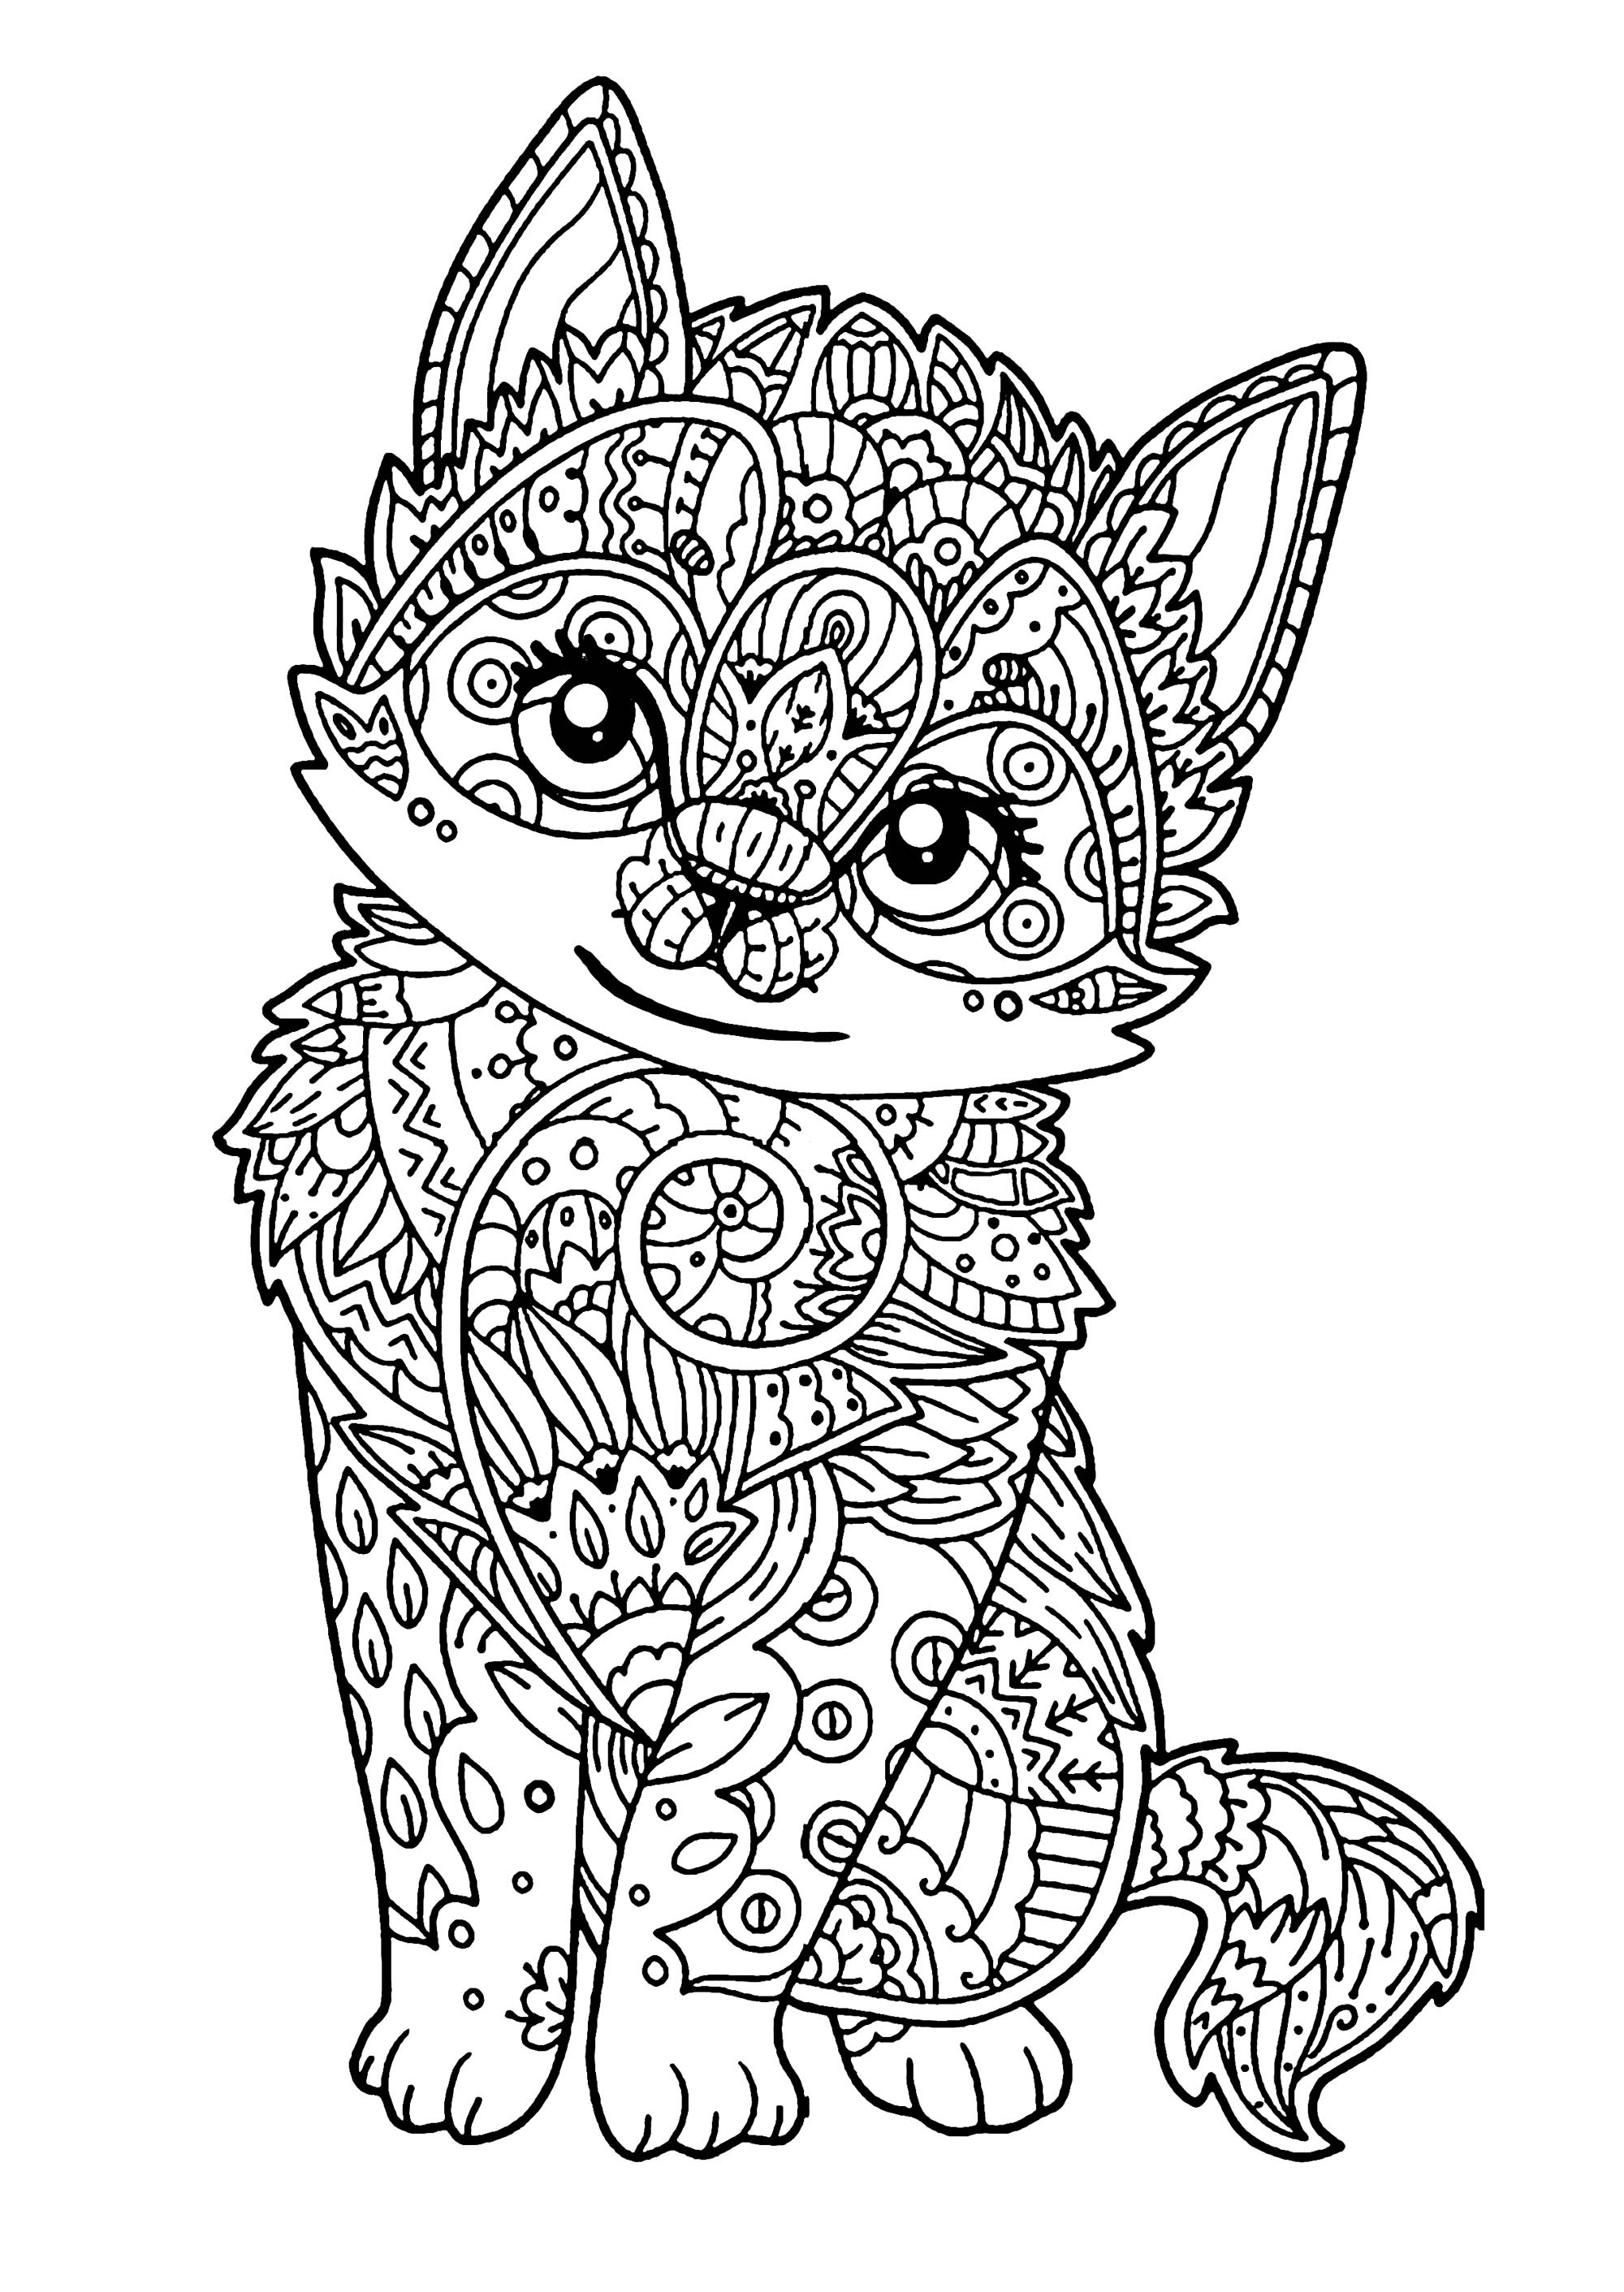 kids coloring pages kitten cat free to color for kids wise cat full of details pages kitten kids coloring